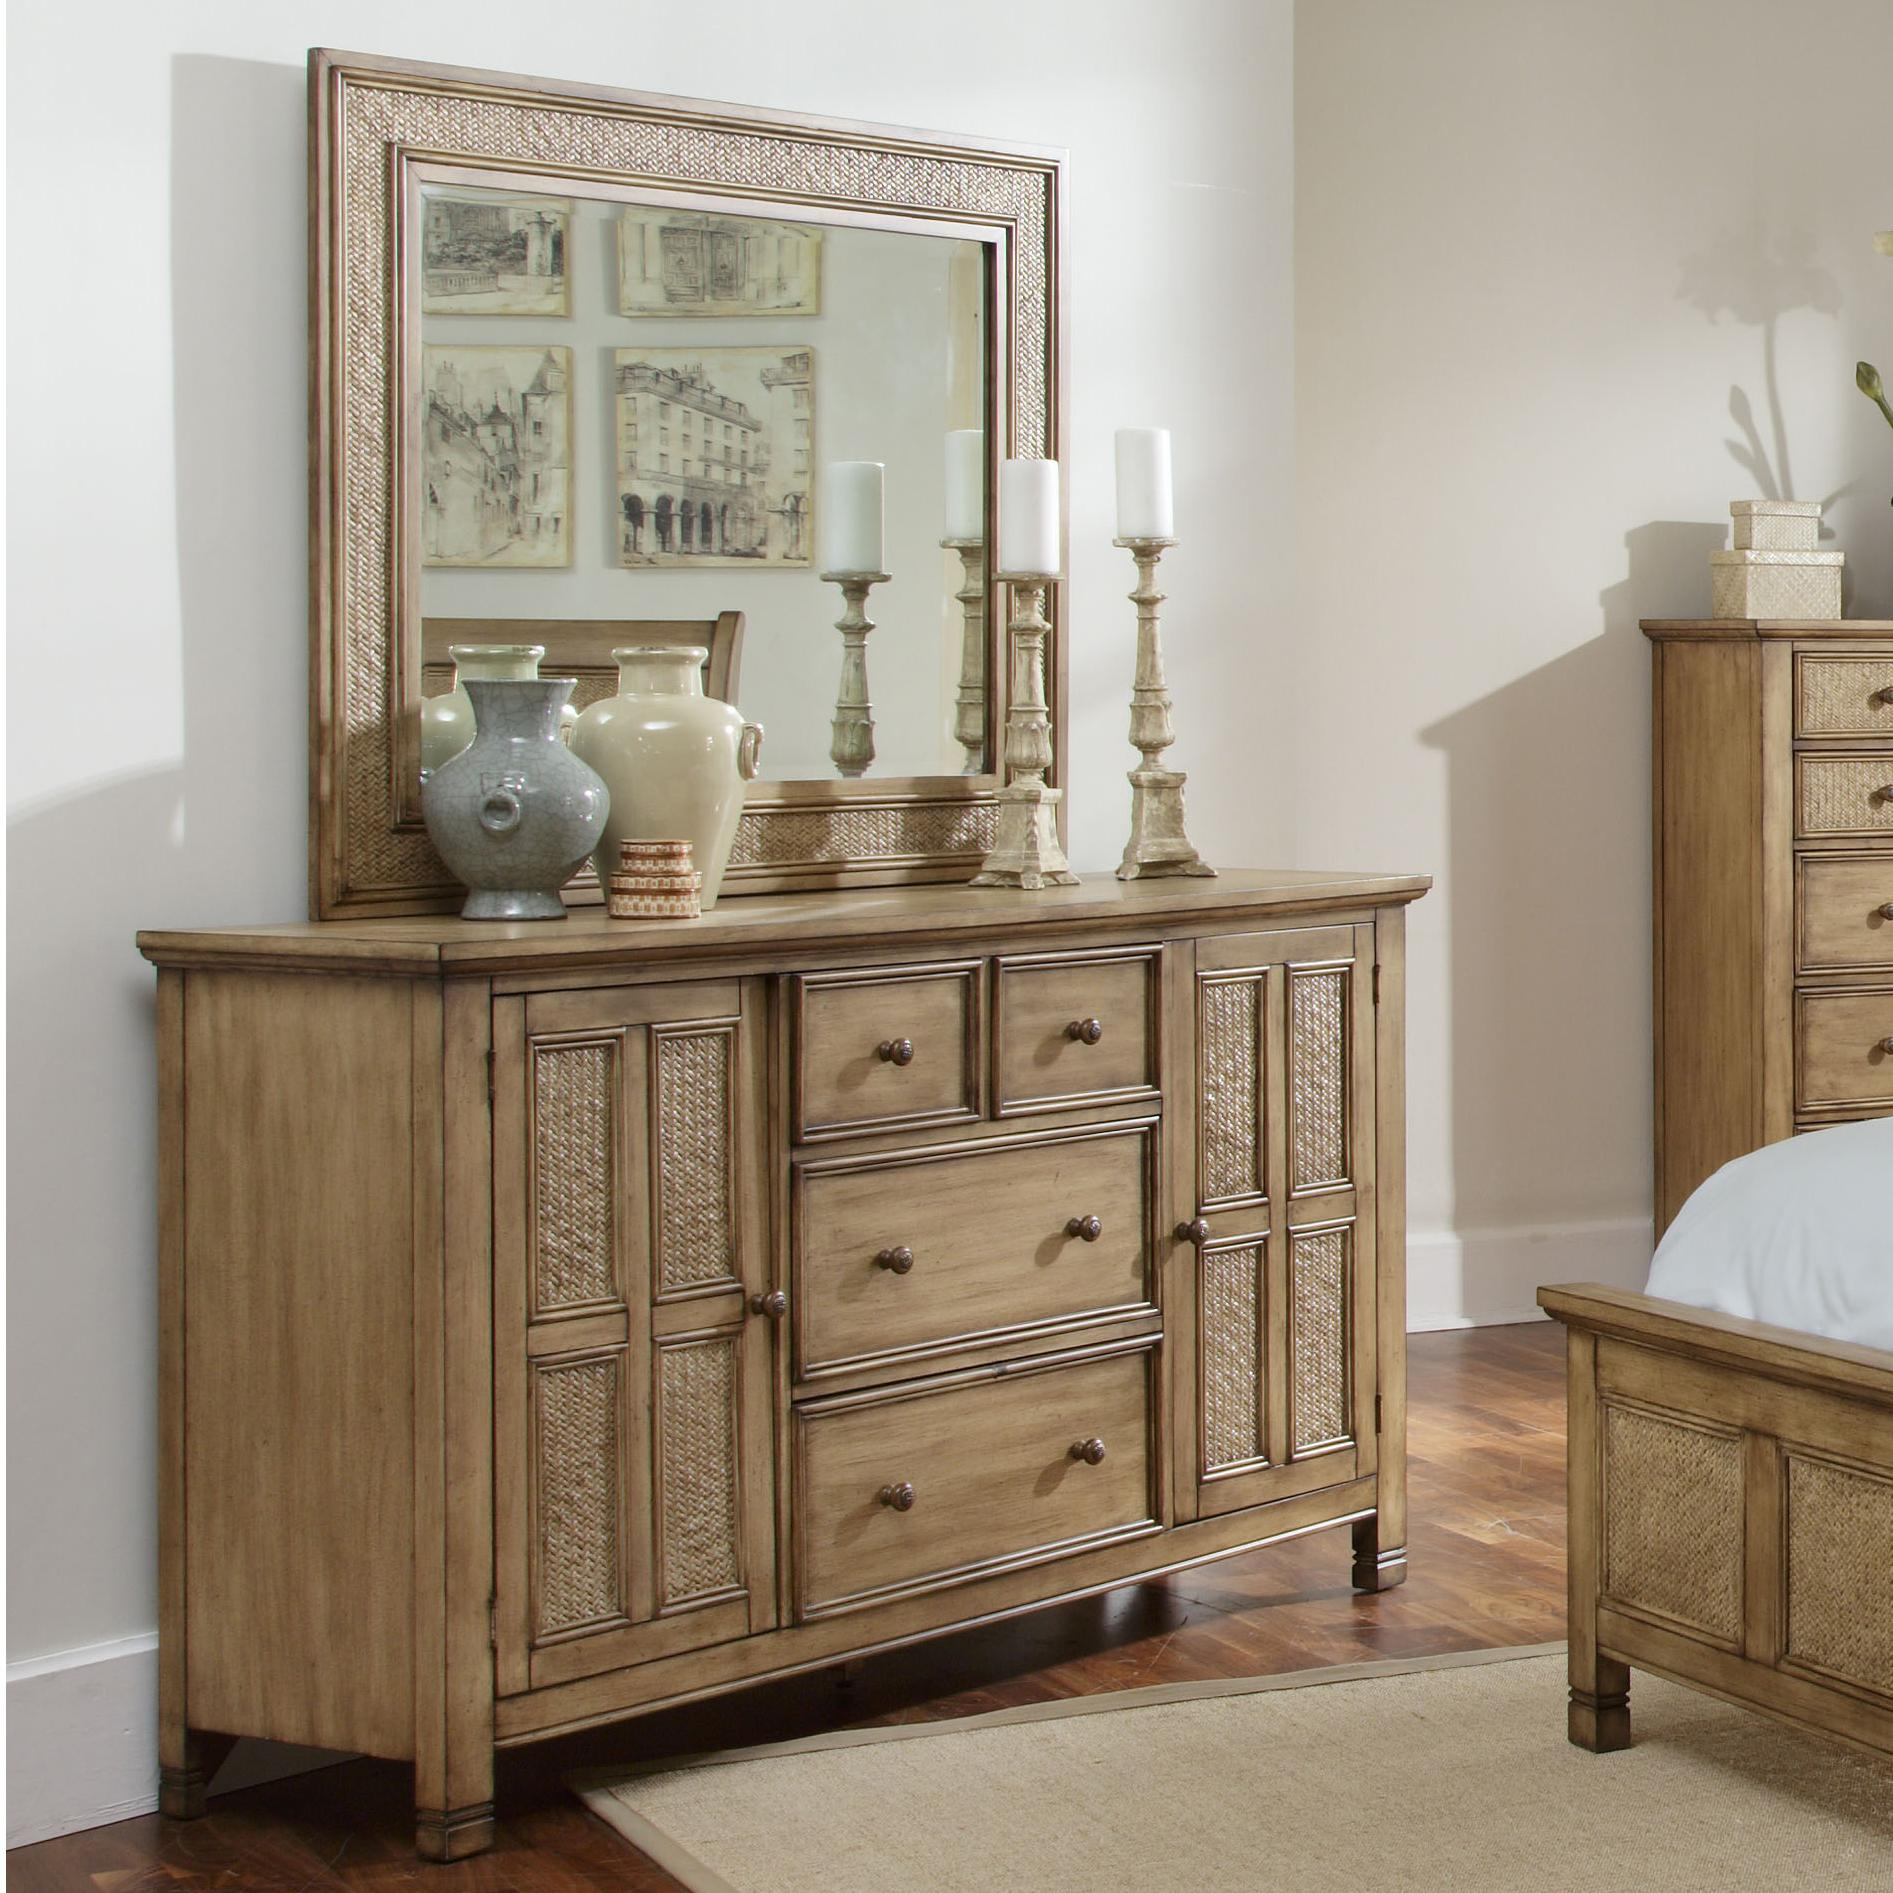 Progressive Furniture Kingston Isle Dresser With Mirror Set - Item Number: P196-50+24